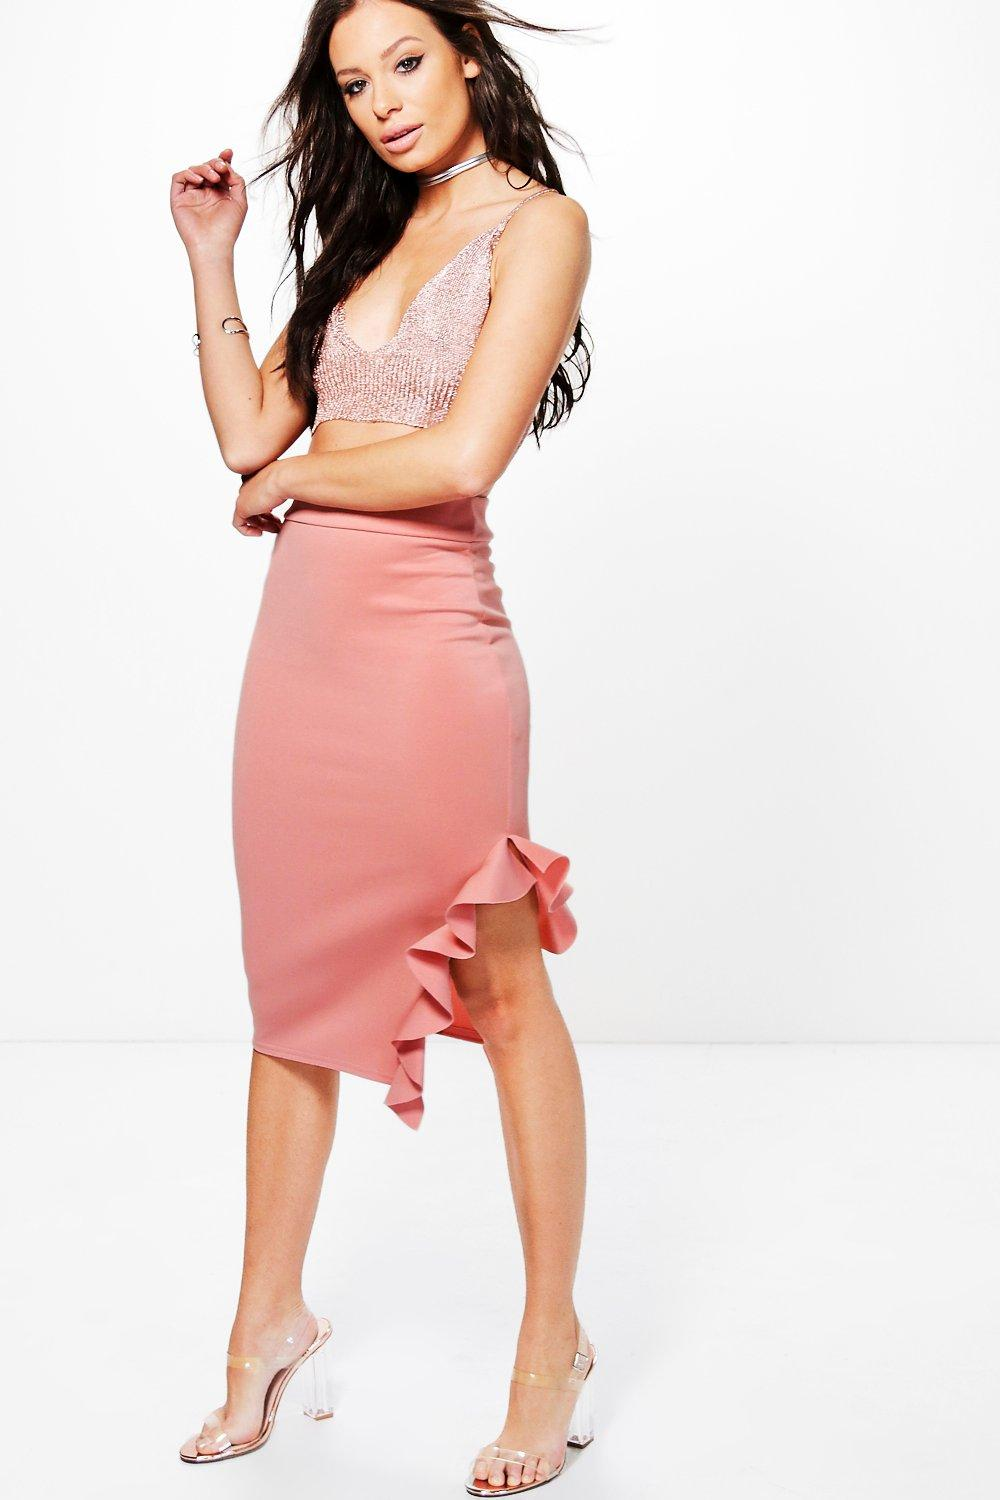 Midi skirts | Full midi skirts at boohoo